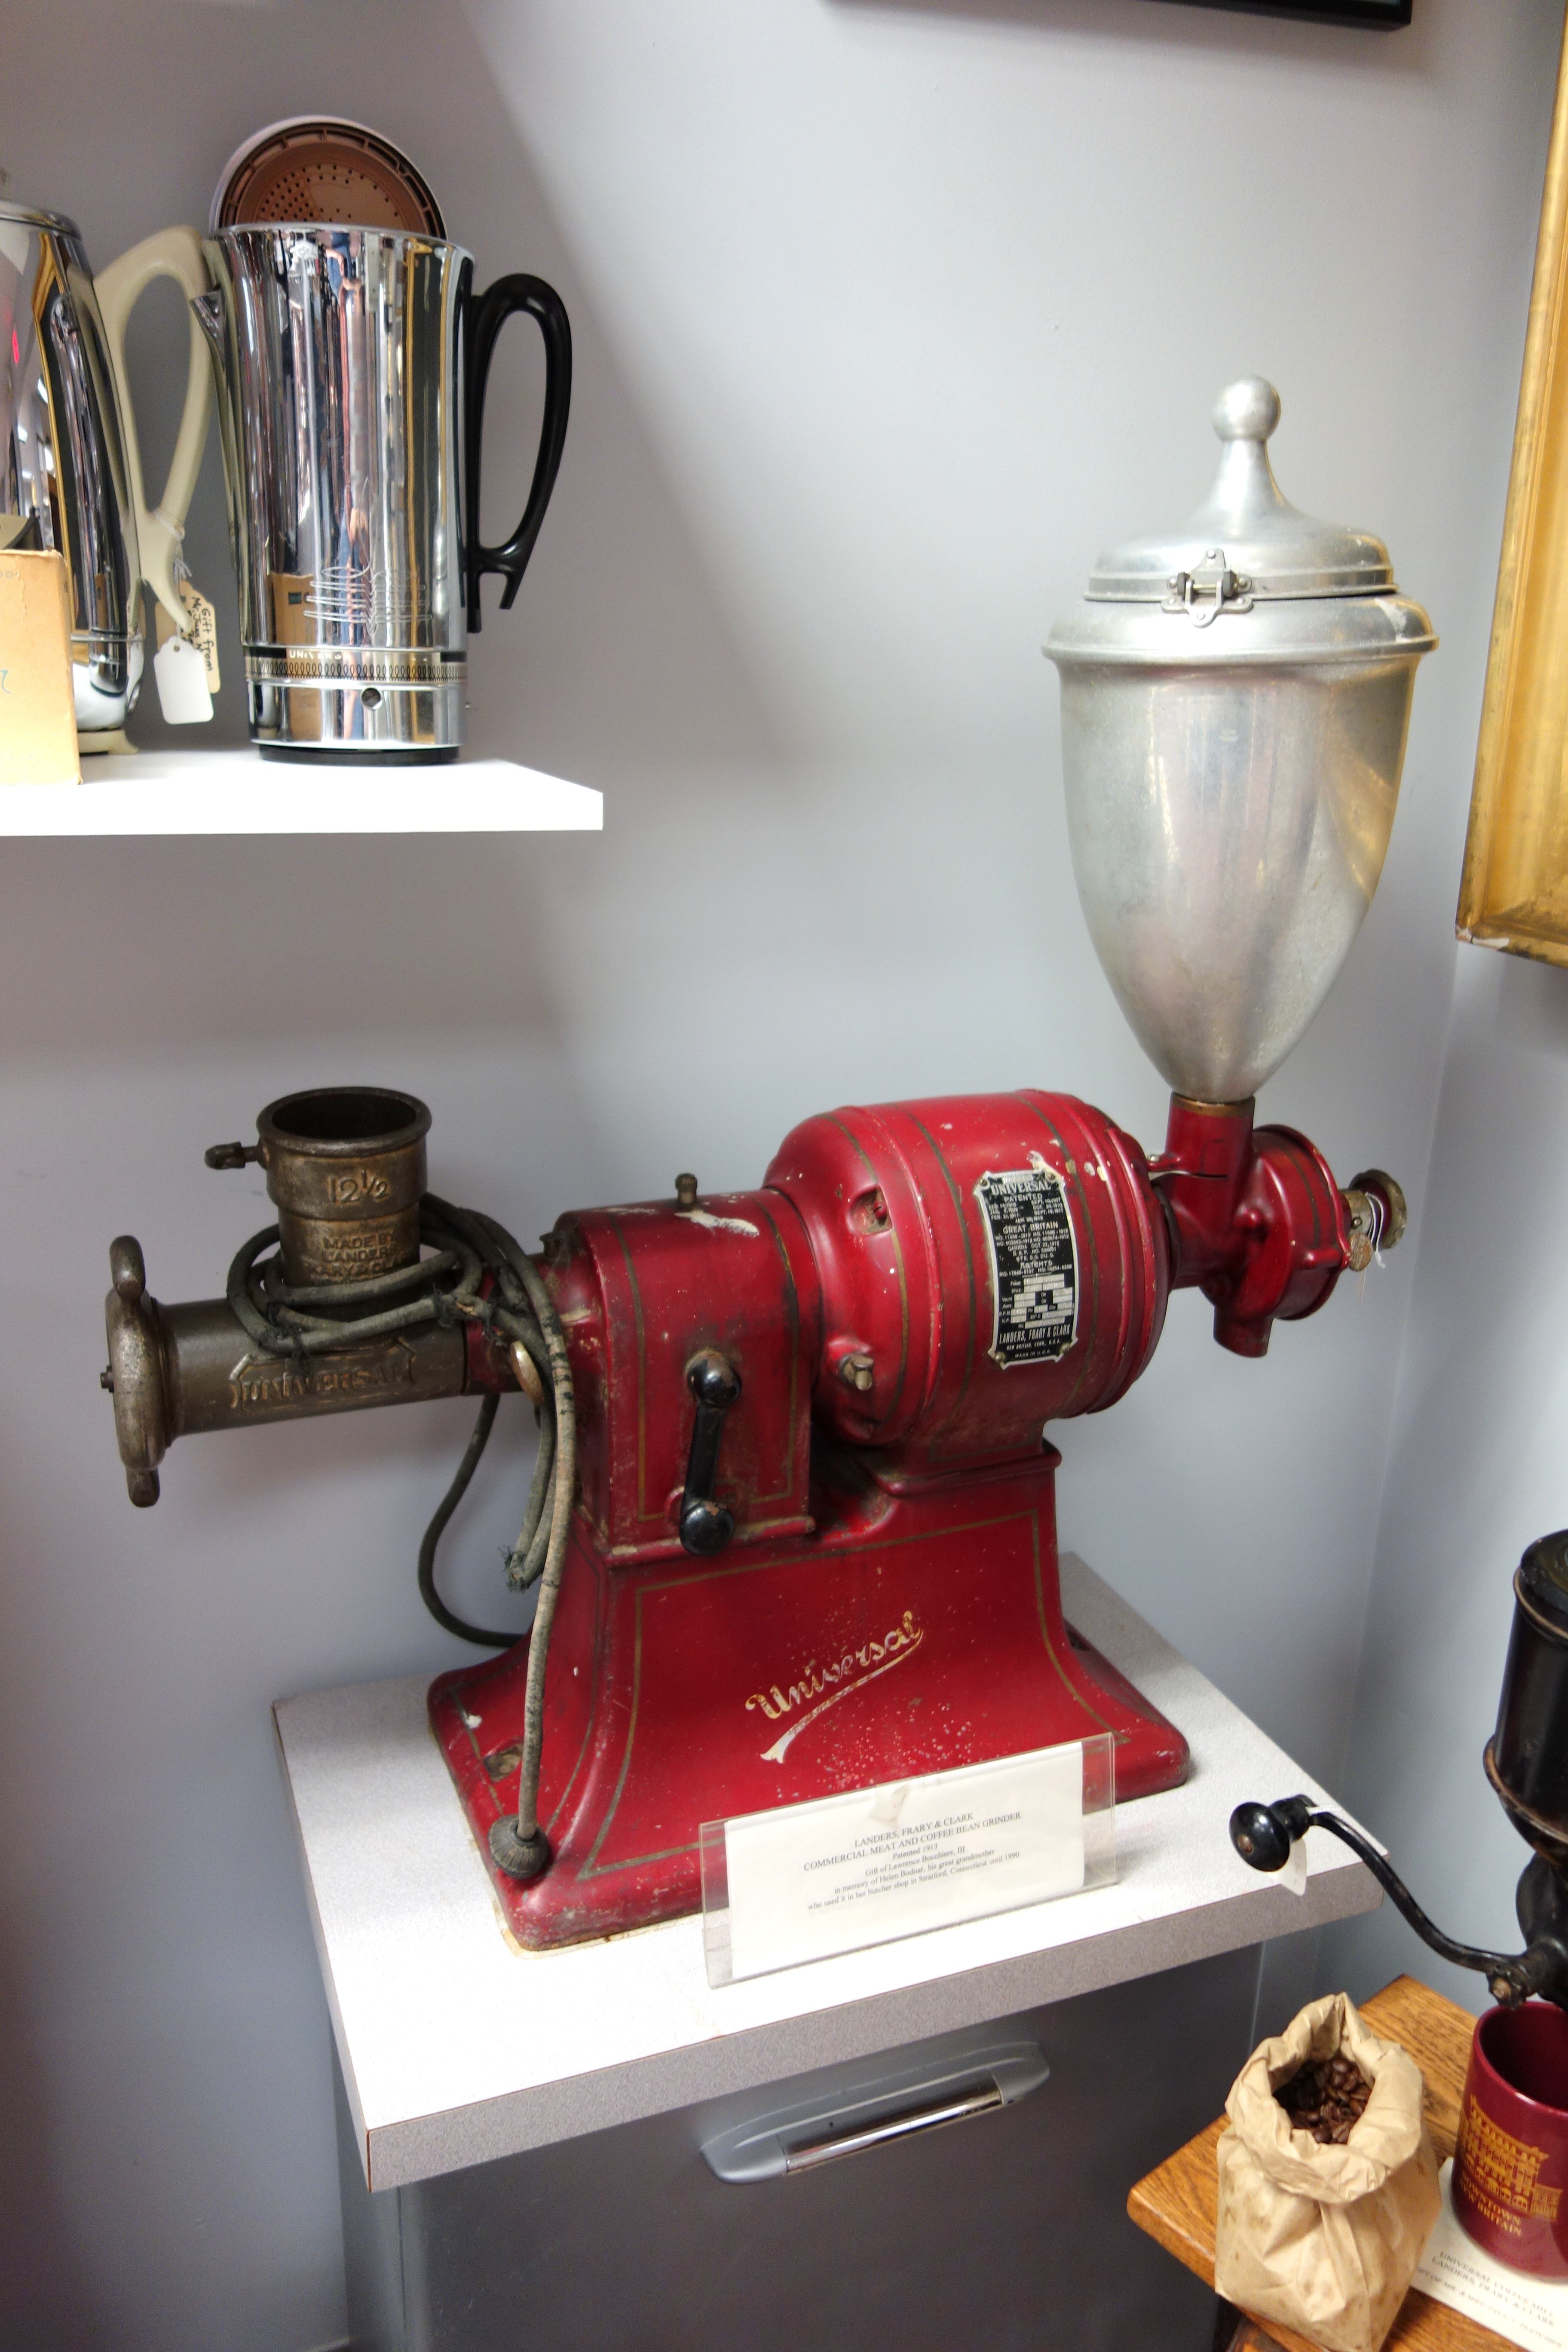 File:Universal Commercial Meat and Coffee Bean Grinder ...